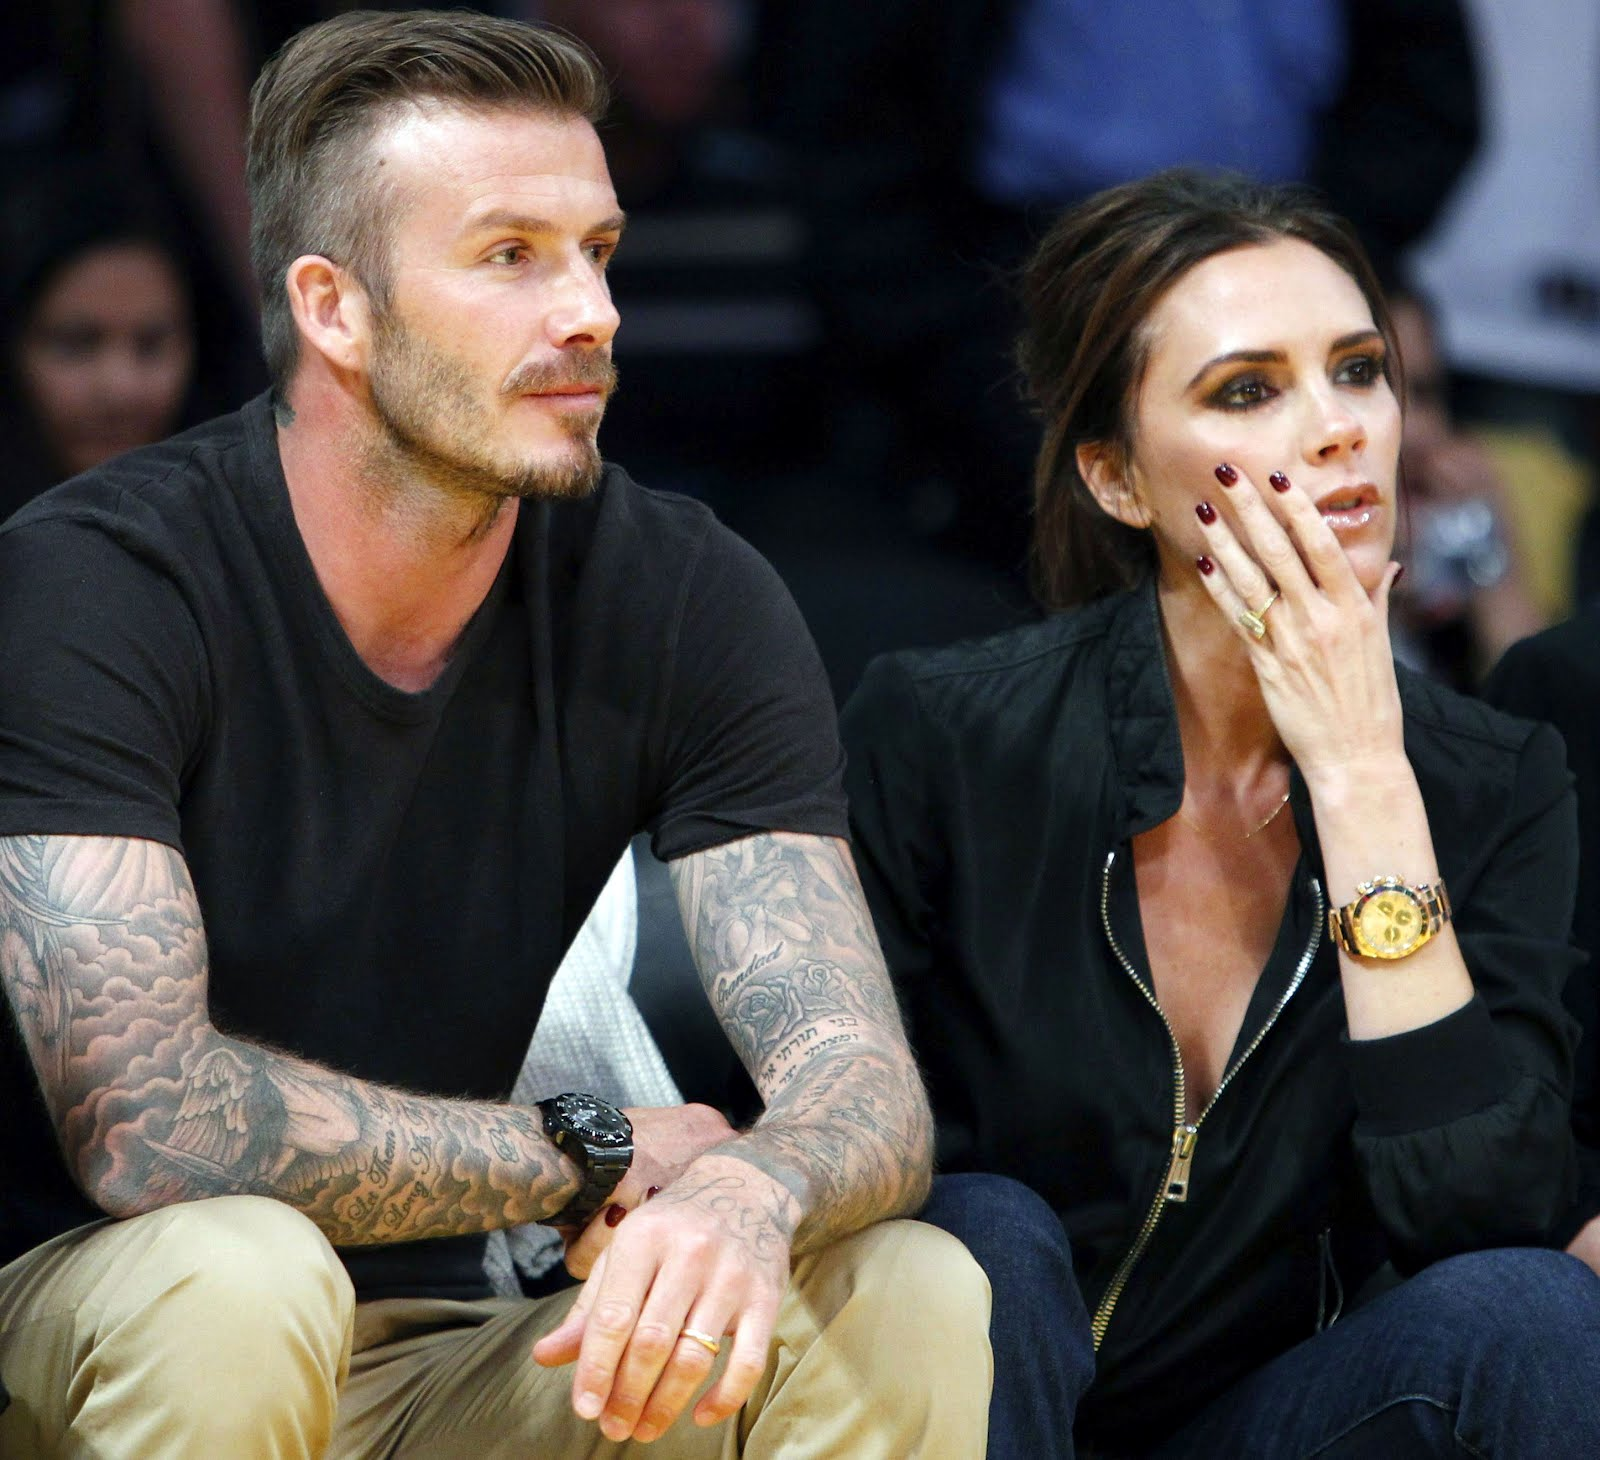 http://2.bp.blogspot.com/-4QP3JIzJrbc/T6T6vNw7pAI/AAAAAAAAPyo/E20BT33Wurk/s1600/David-and-Victoria-Beckham-Rolex-at-LA-Lakers-Game.jpg